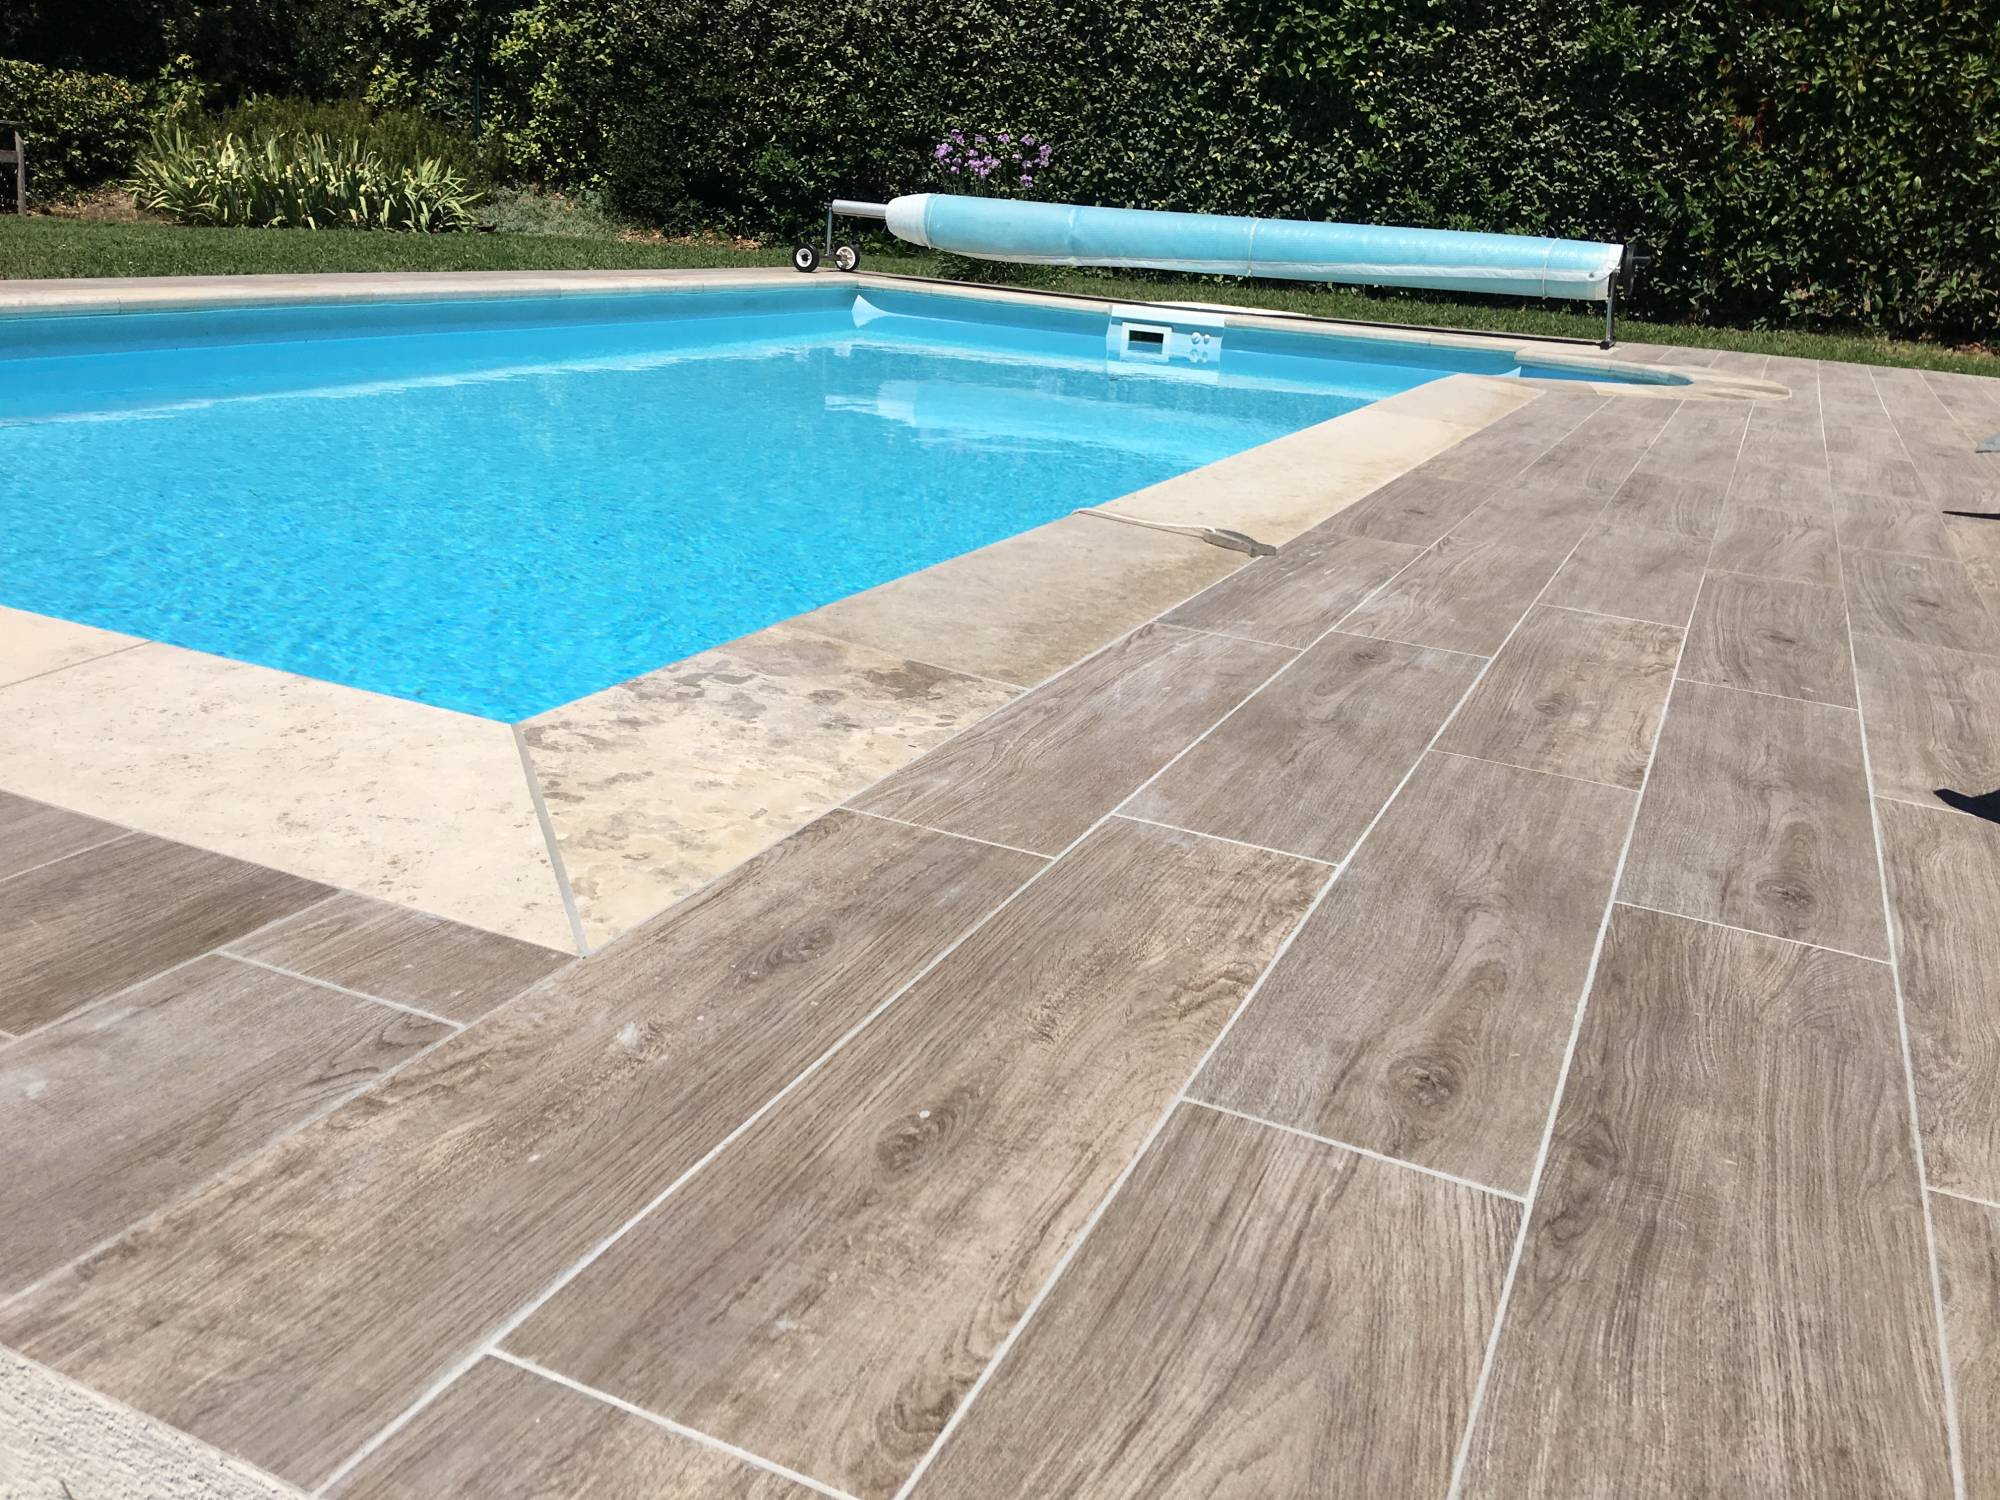 Carrelage imitation bois pour piscine for Margelle piscine